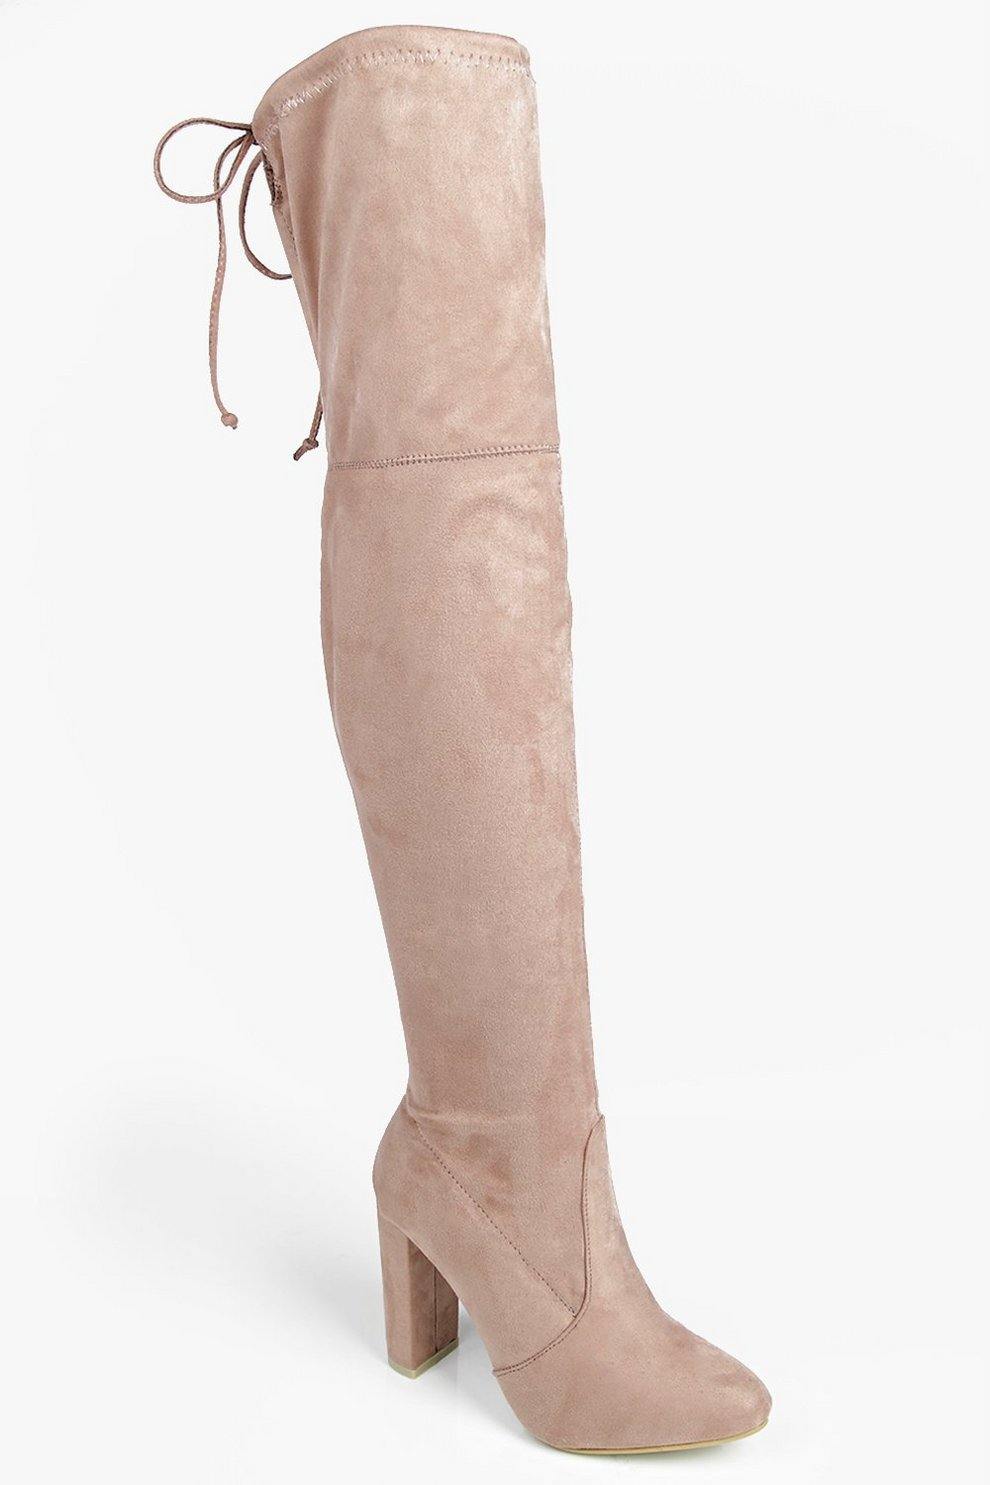 5a375ac8ac Block Heel Lace Up Back Thigh High Boots   Boohoo